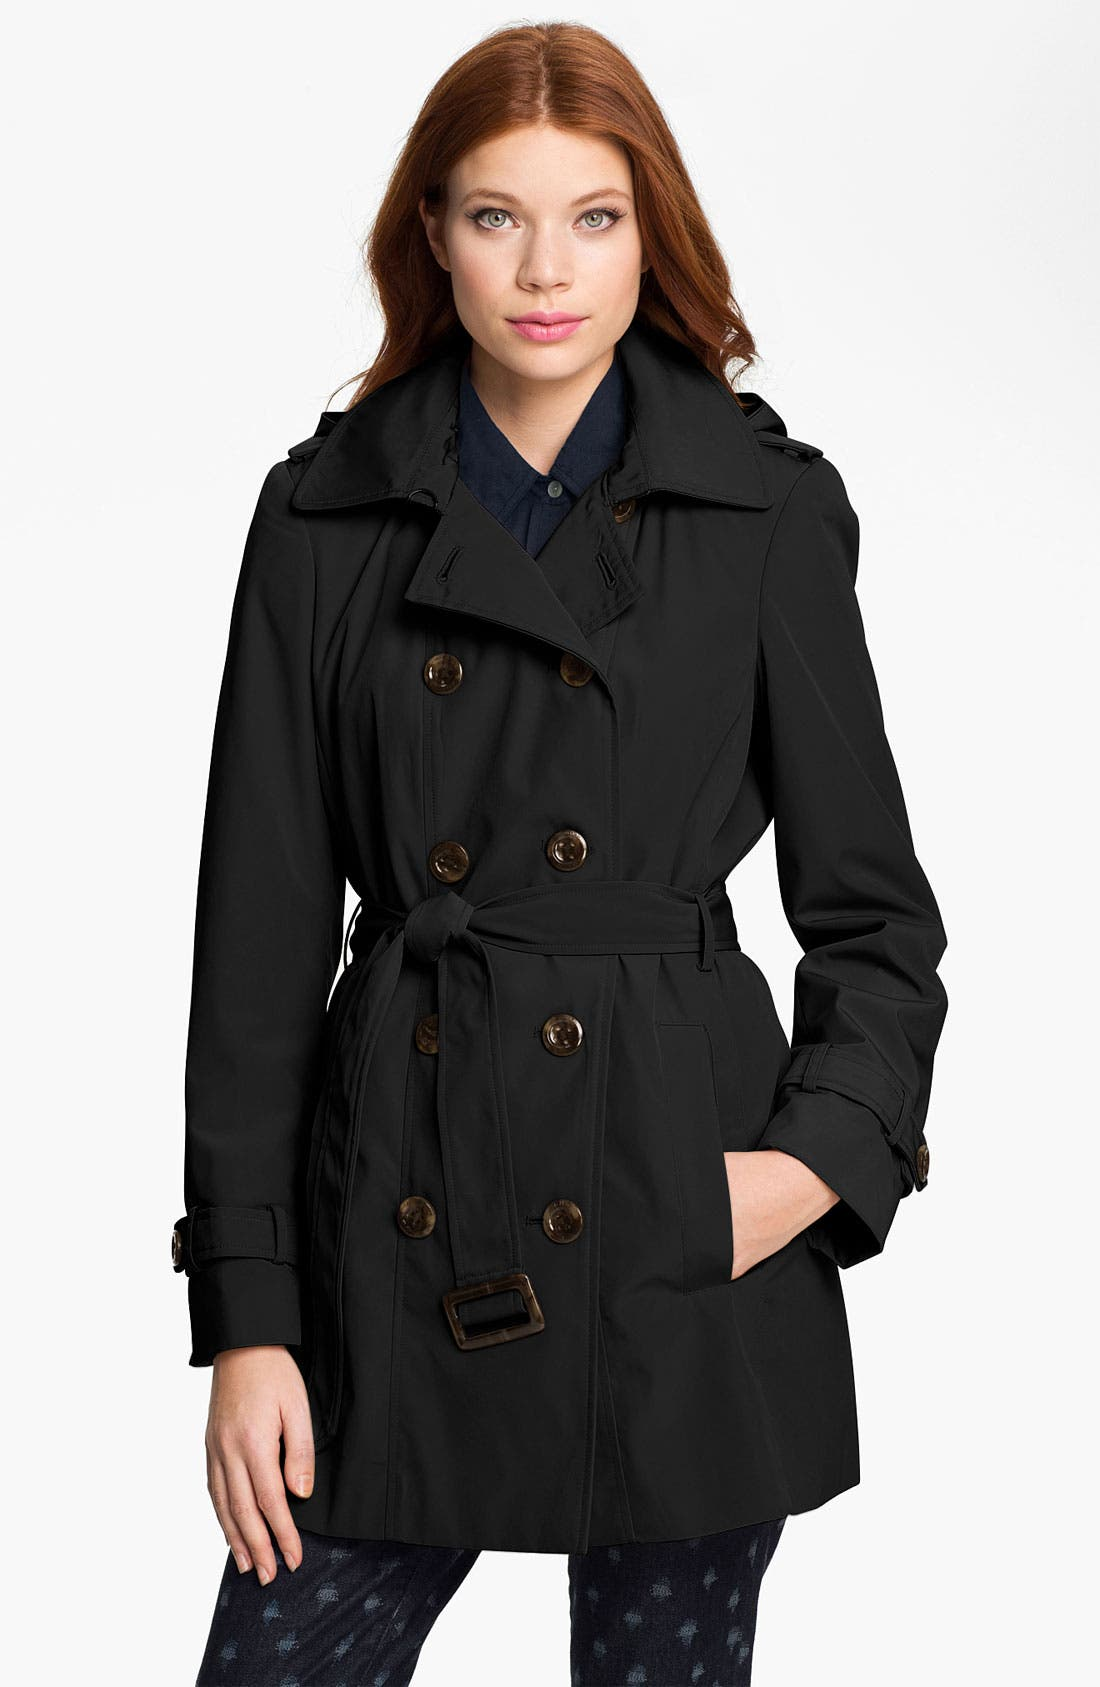 CALVIN KLEIN, Trench Coat with Detachable Liner, Main thumbnail 1, color, 001